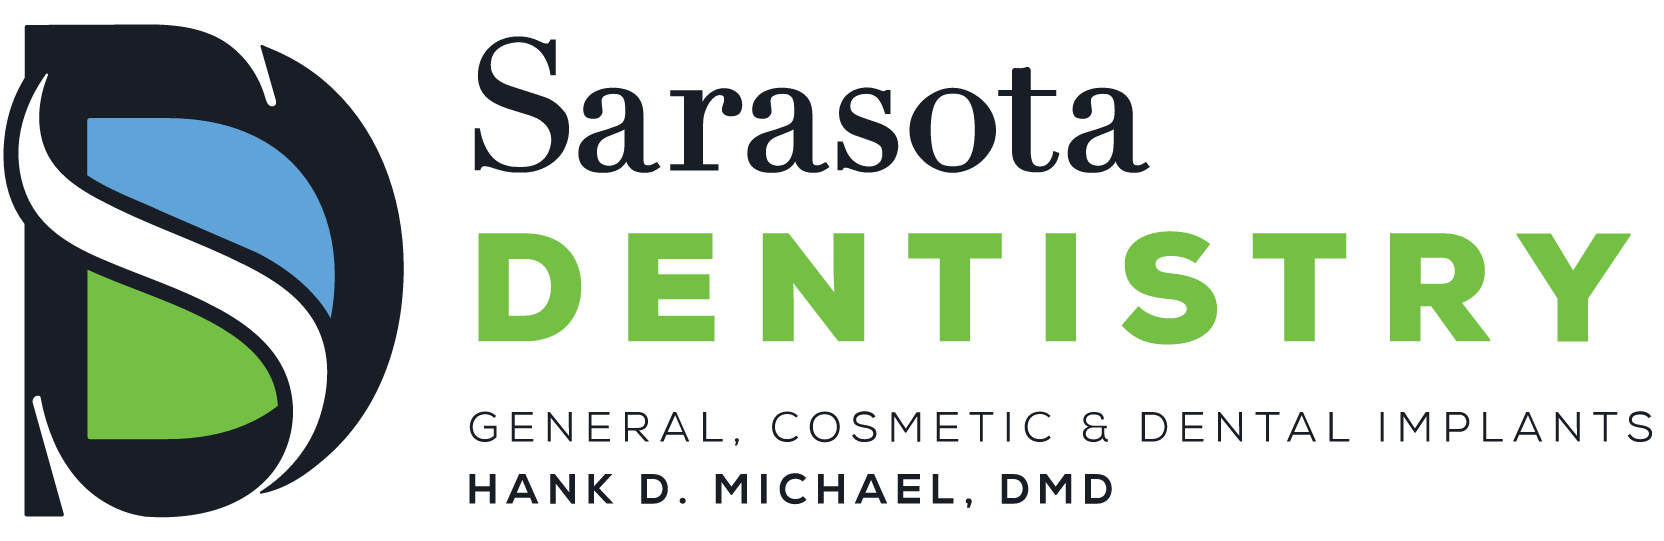 sarasota dentistry launches dental scholarship essay sarasota dentistry logo